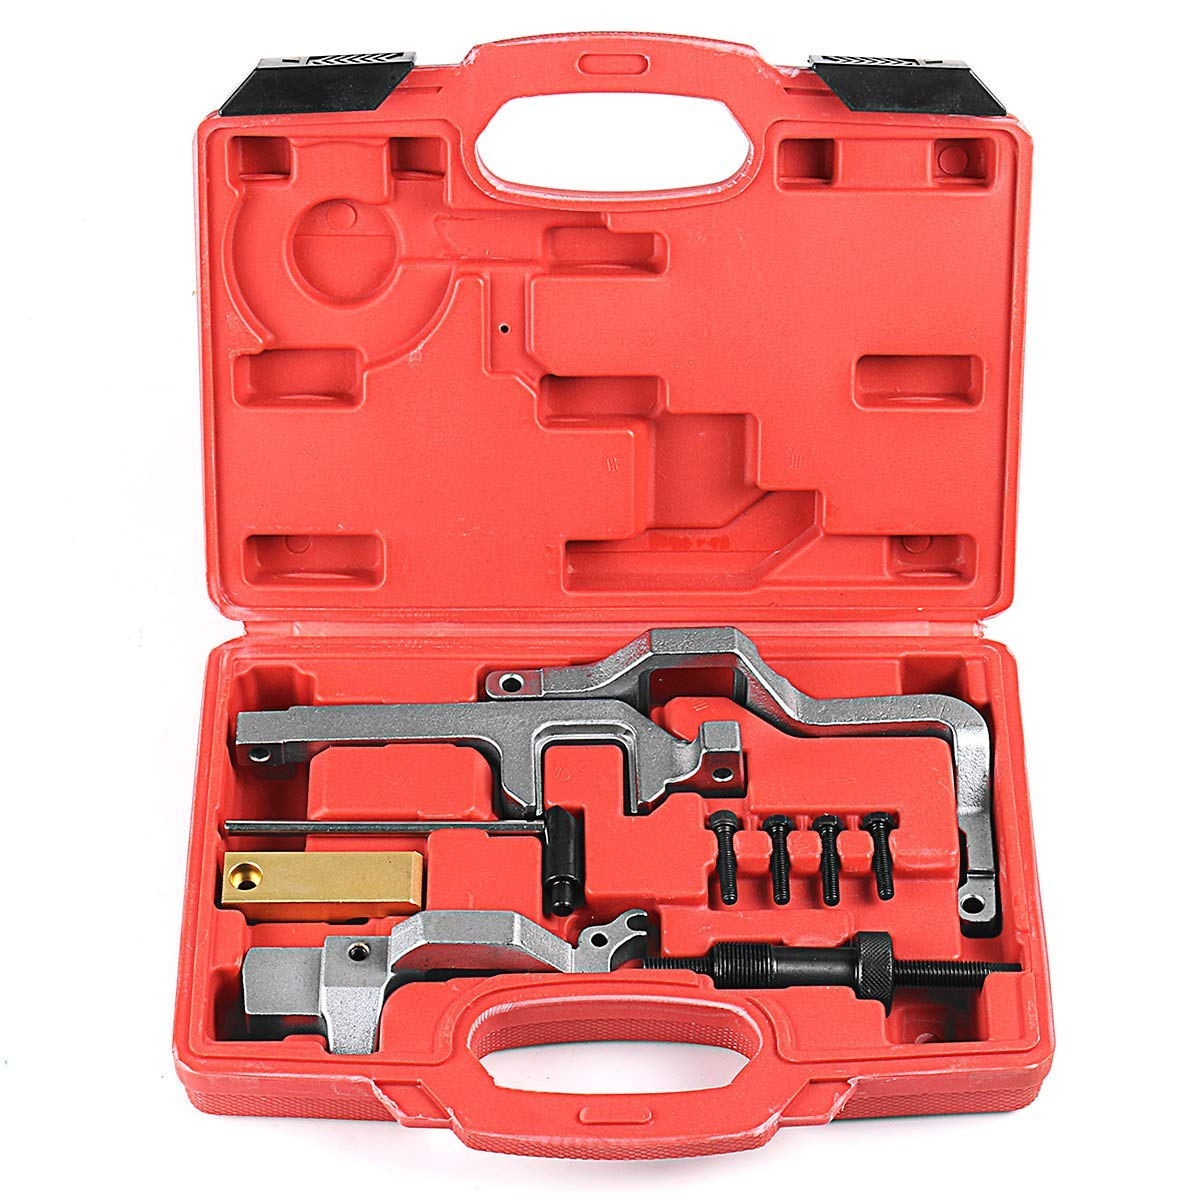 Supercrazy BMW MINI COOPER N12/N14 CITROEN PEUGEOT Engine Twin Camshaft Alignment Locking Timing Tool Kit SF0046 by Supercrazy (Image #1)